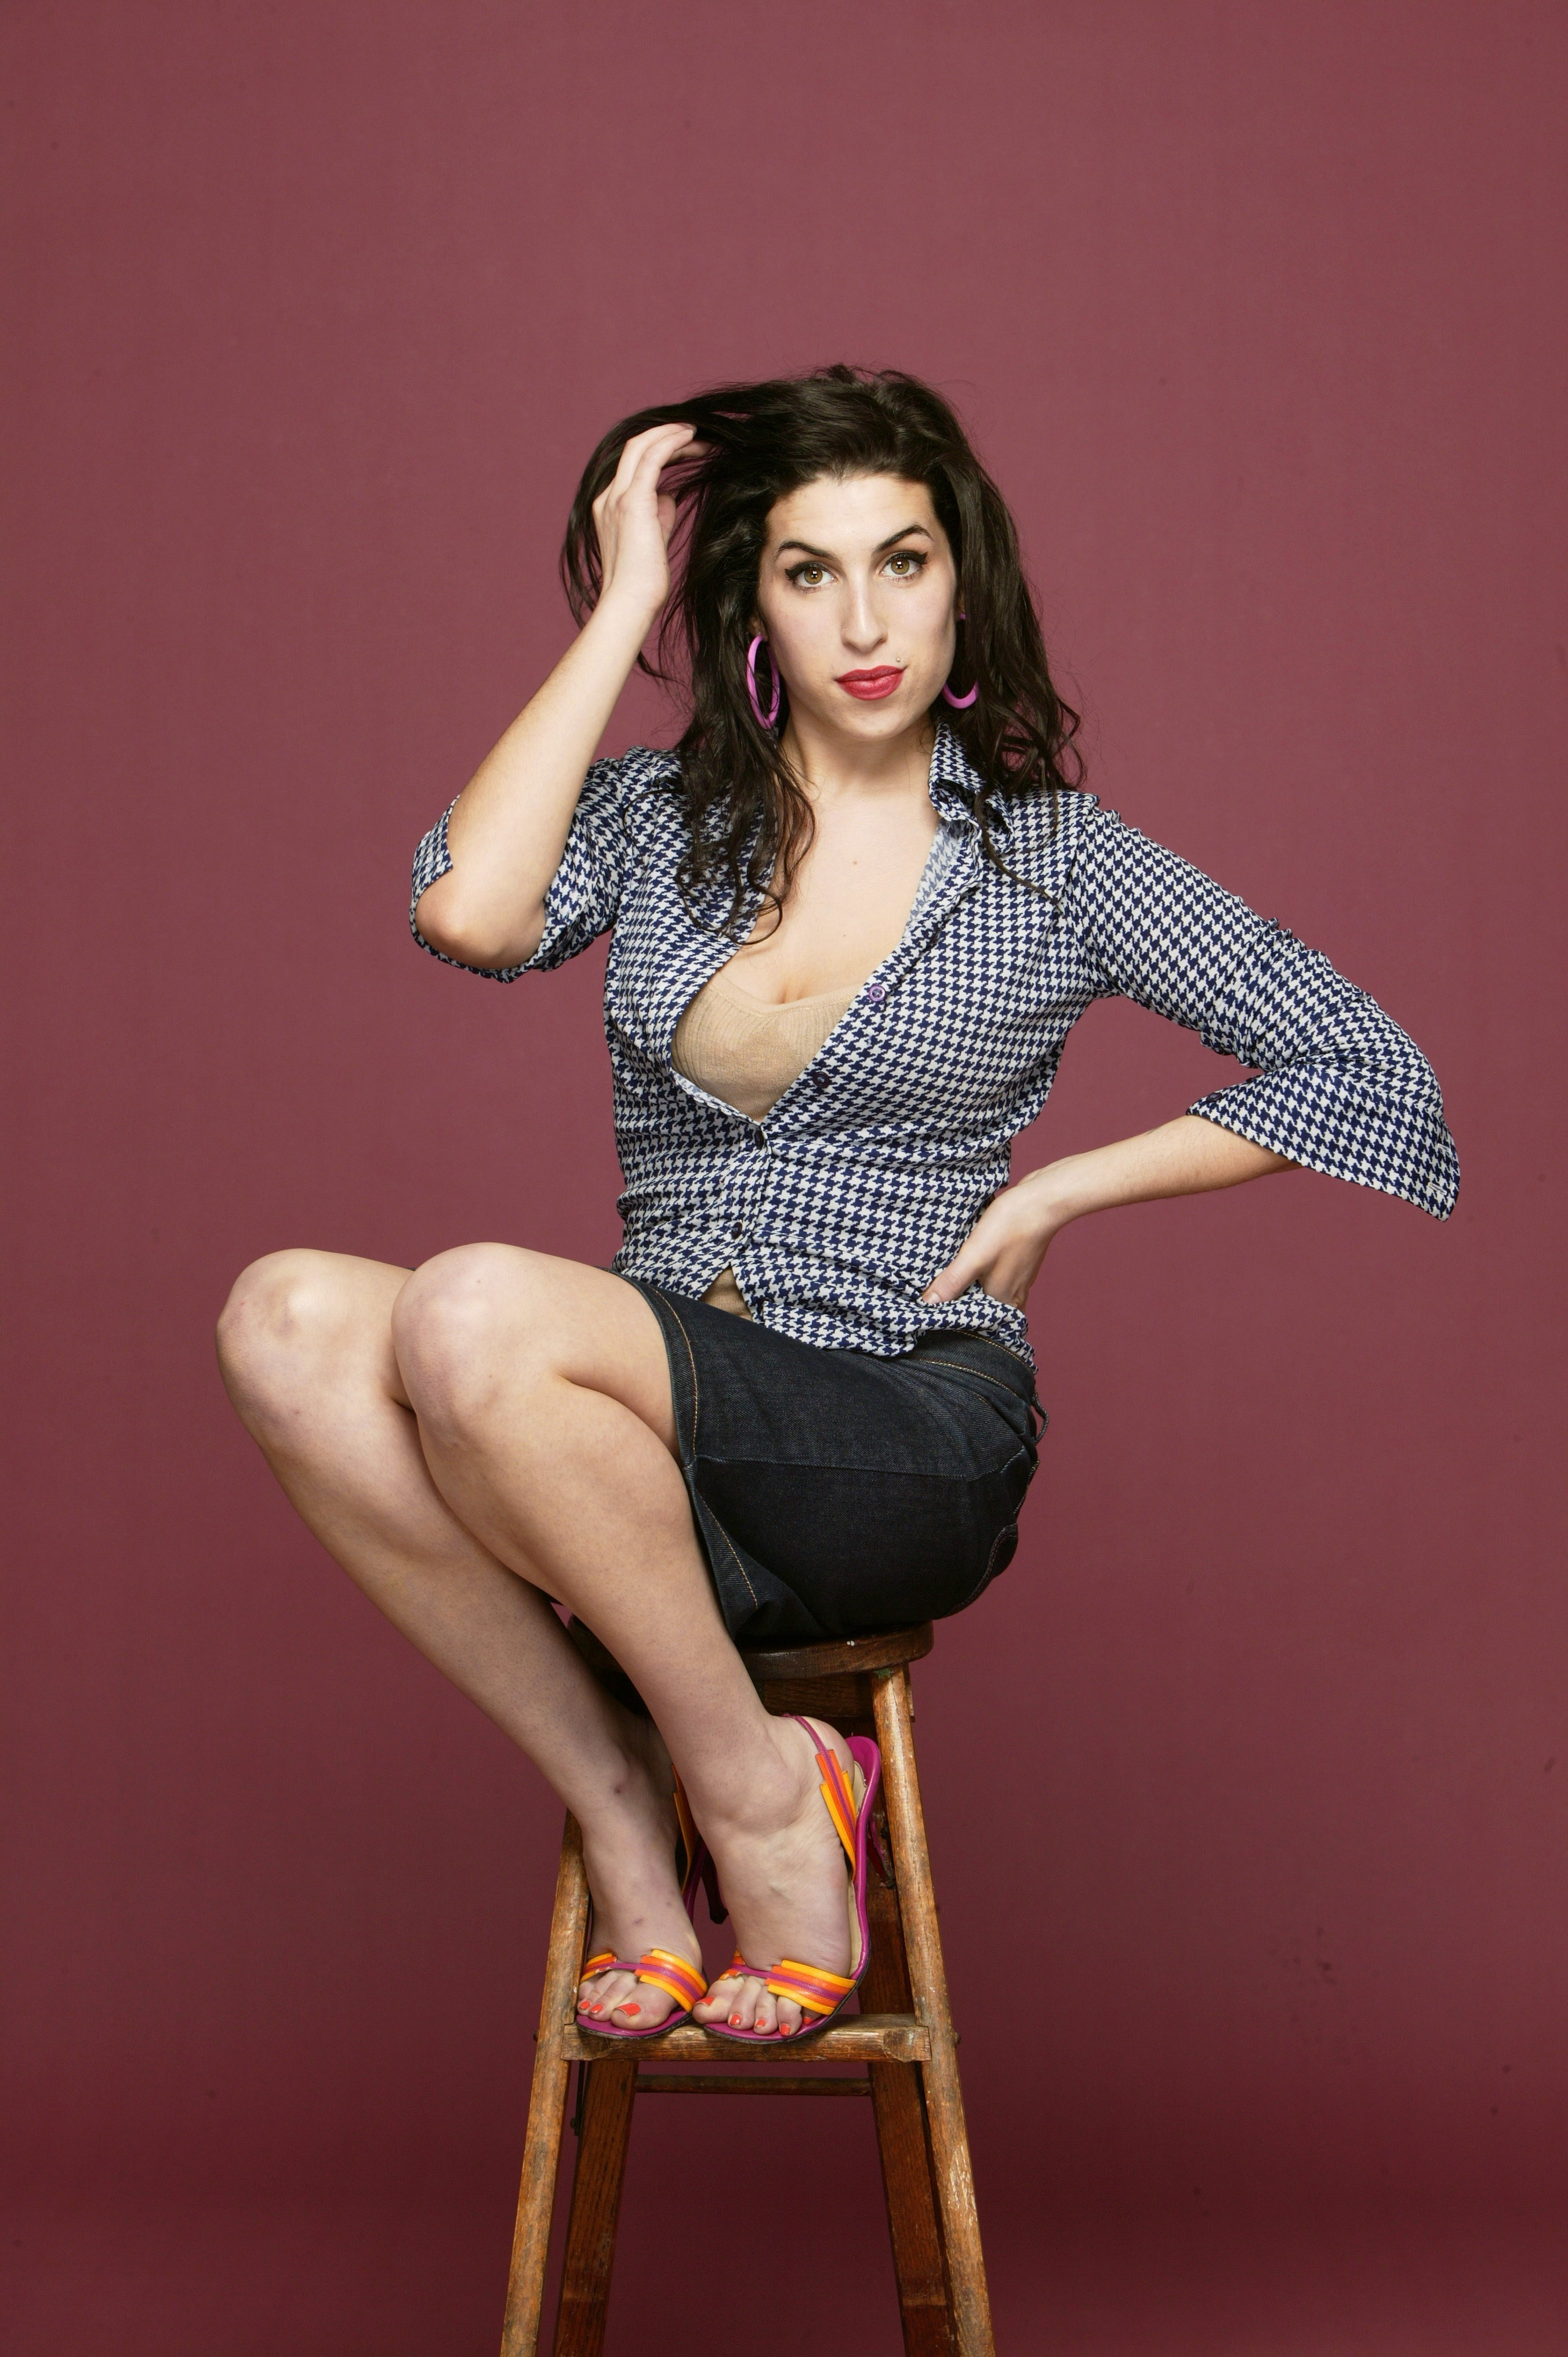 amy winehouse wallpaper iphone 5